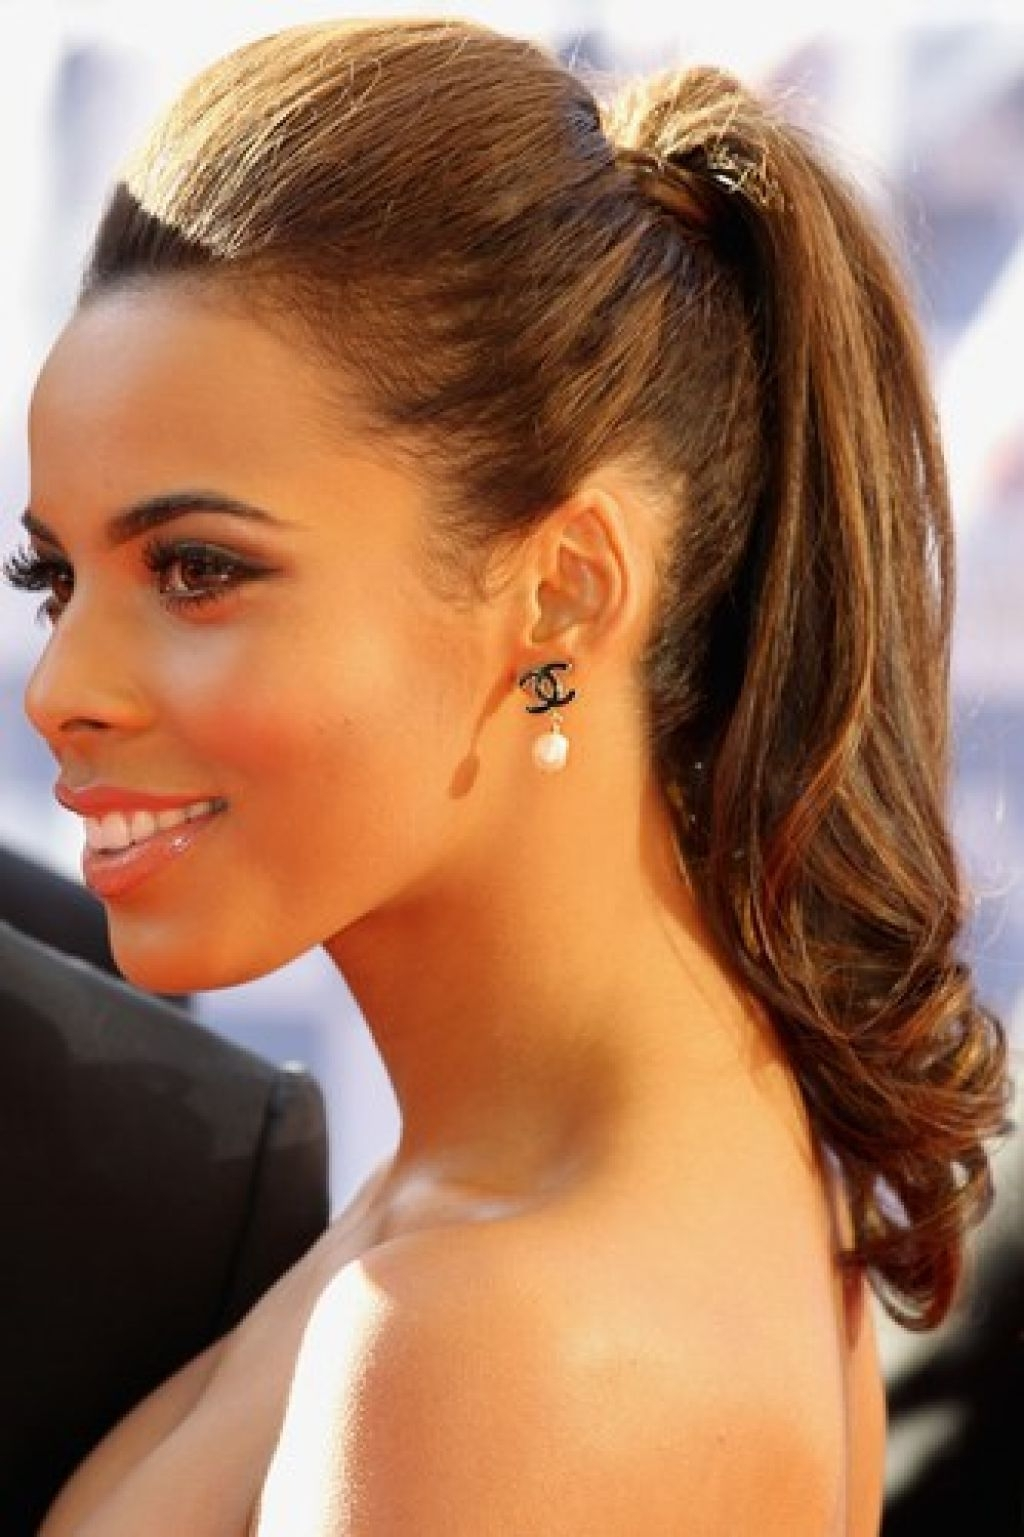 Wedding Hairstyles Ideas: Pulled Back Low Updo Wedding Guest Intended For Latest Pulled To The Side Wedding Hairstyles (View 14 of 15)